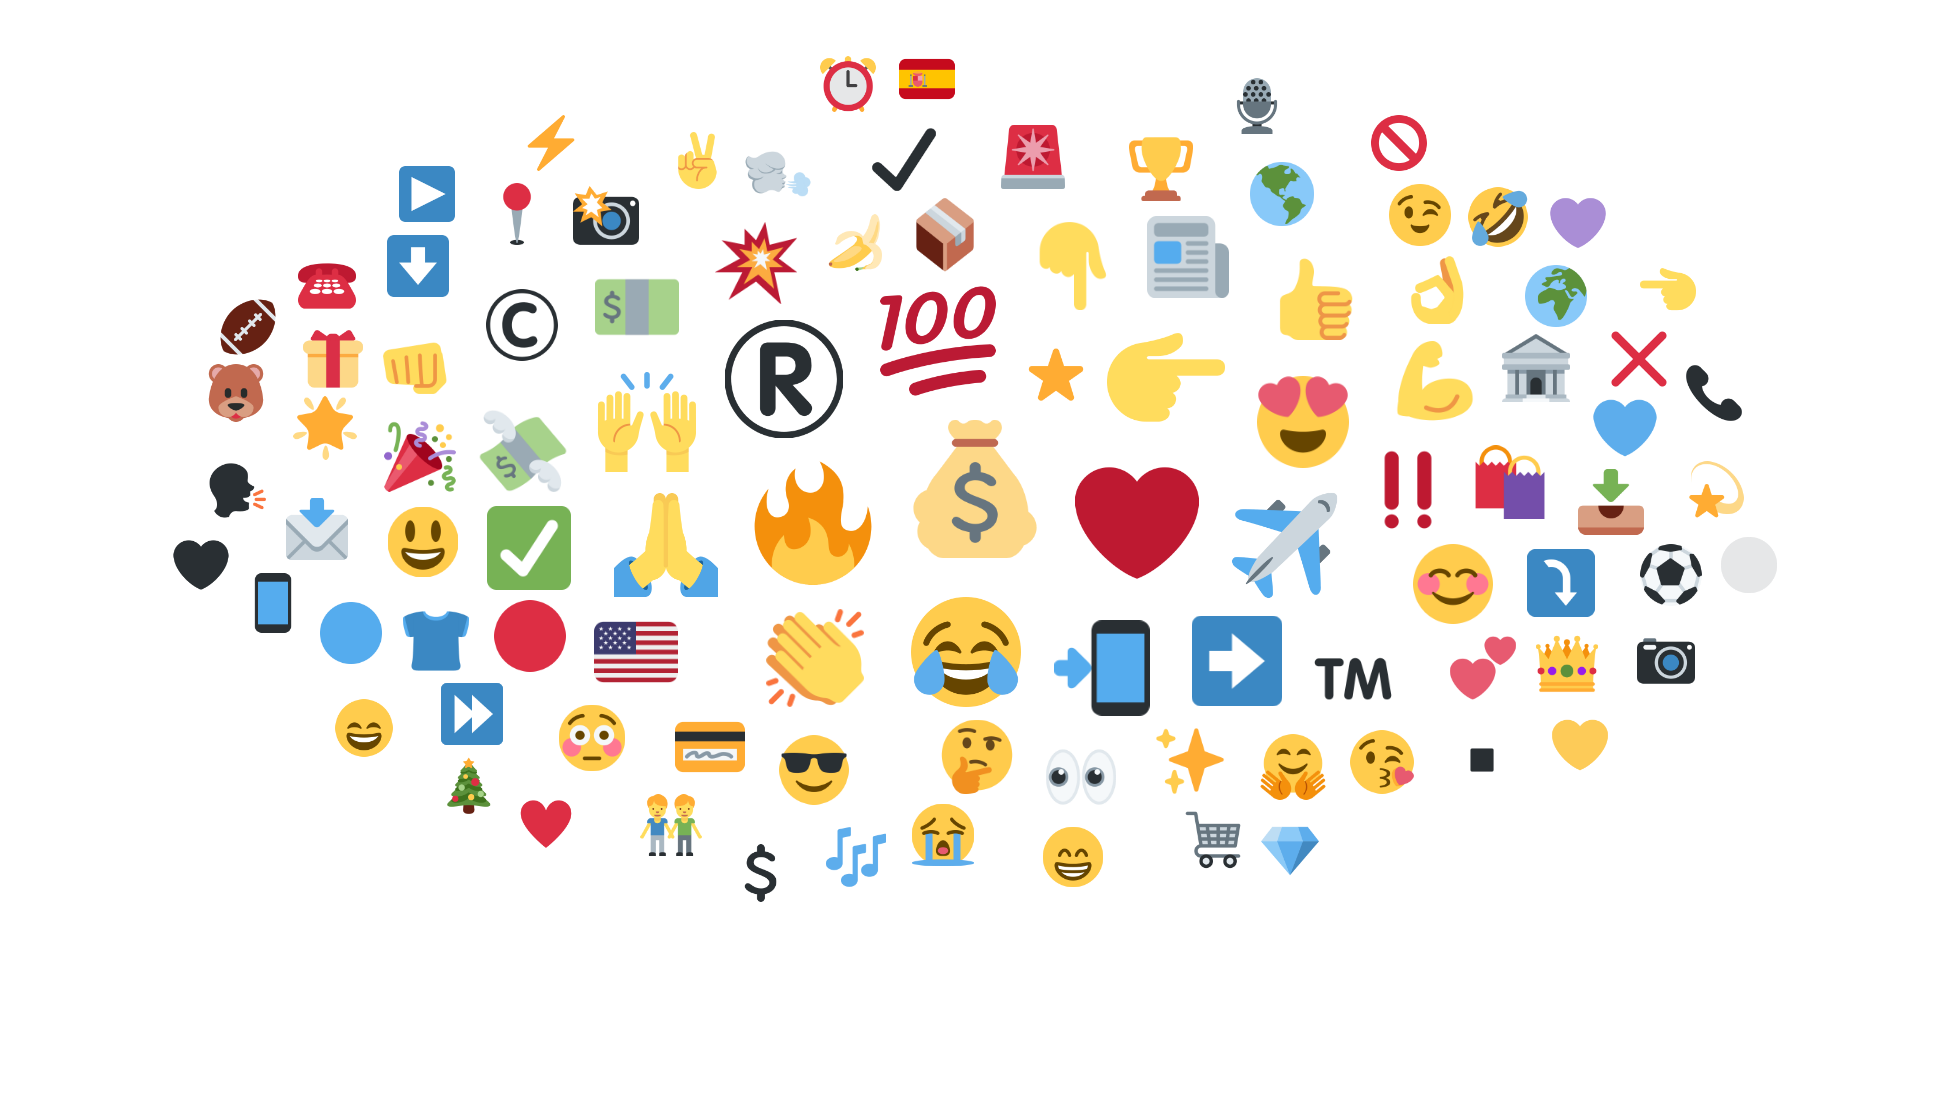 Most used emojis for financial services brands